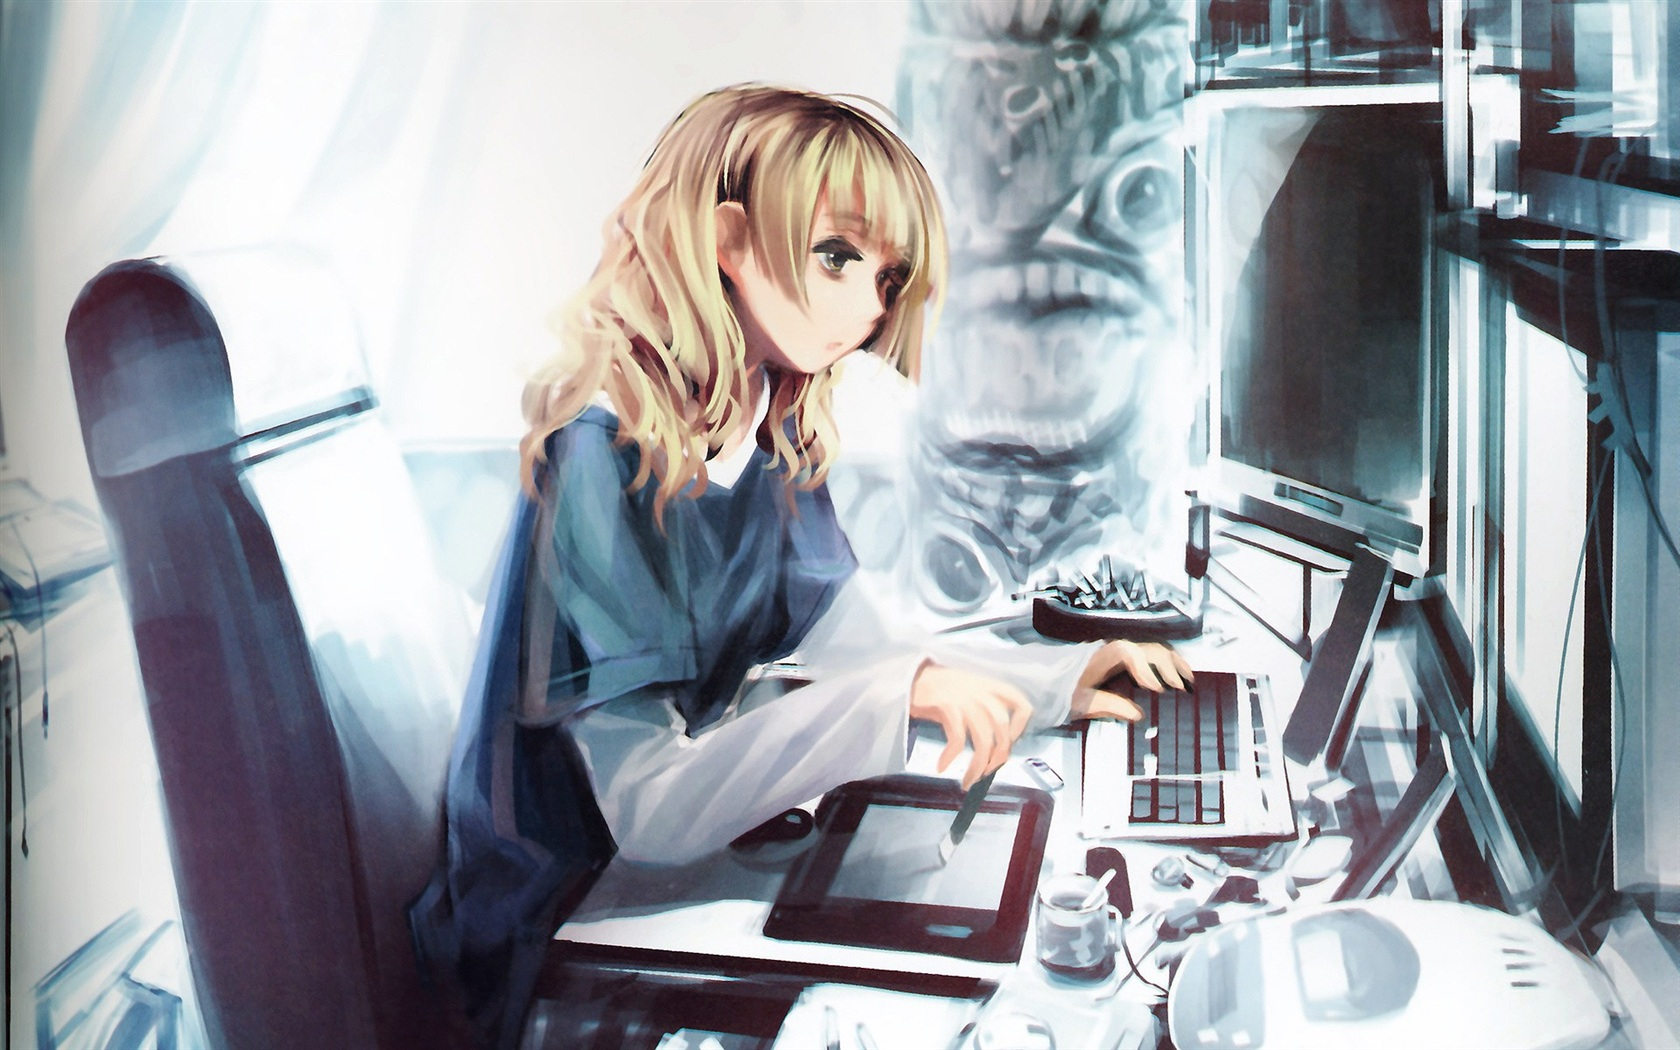 Download Wallpaper 1680x1050 Anime girl with computer HD ...